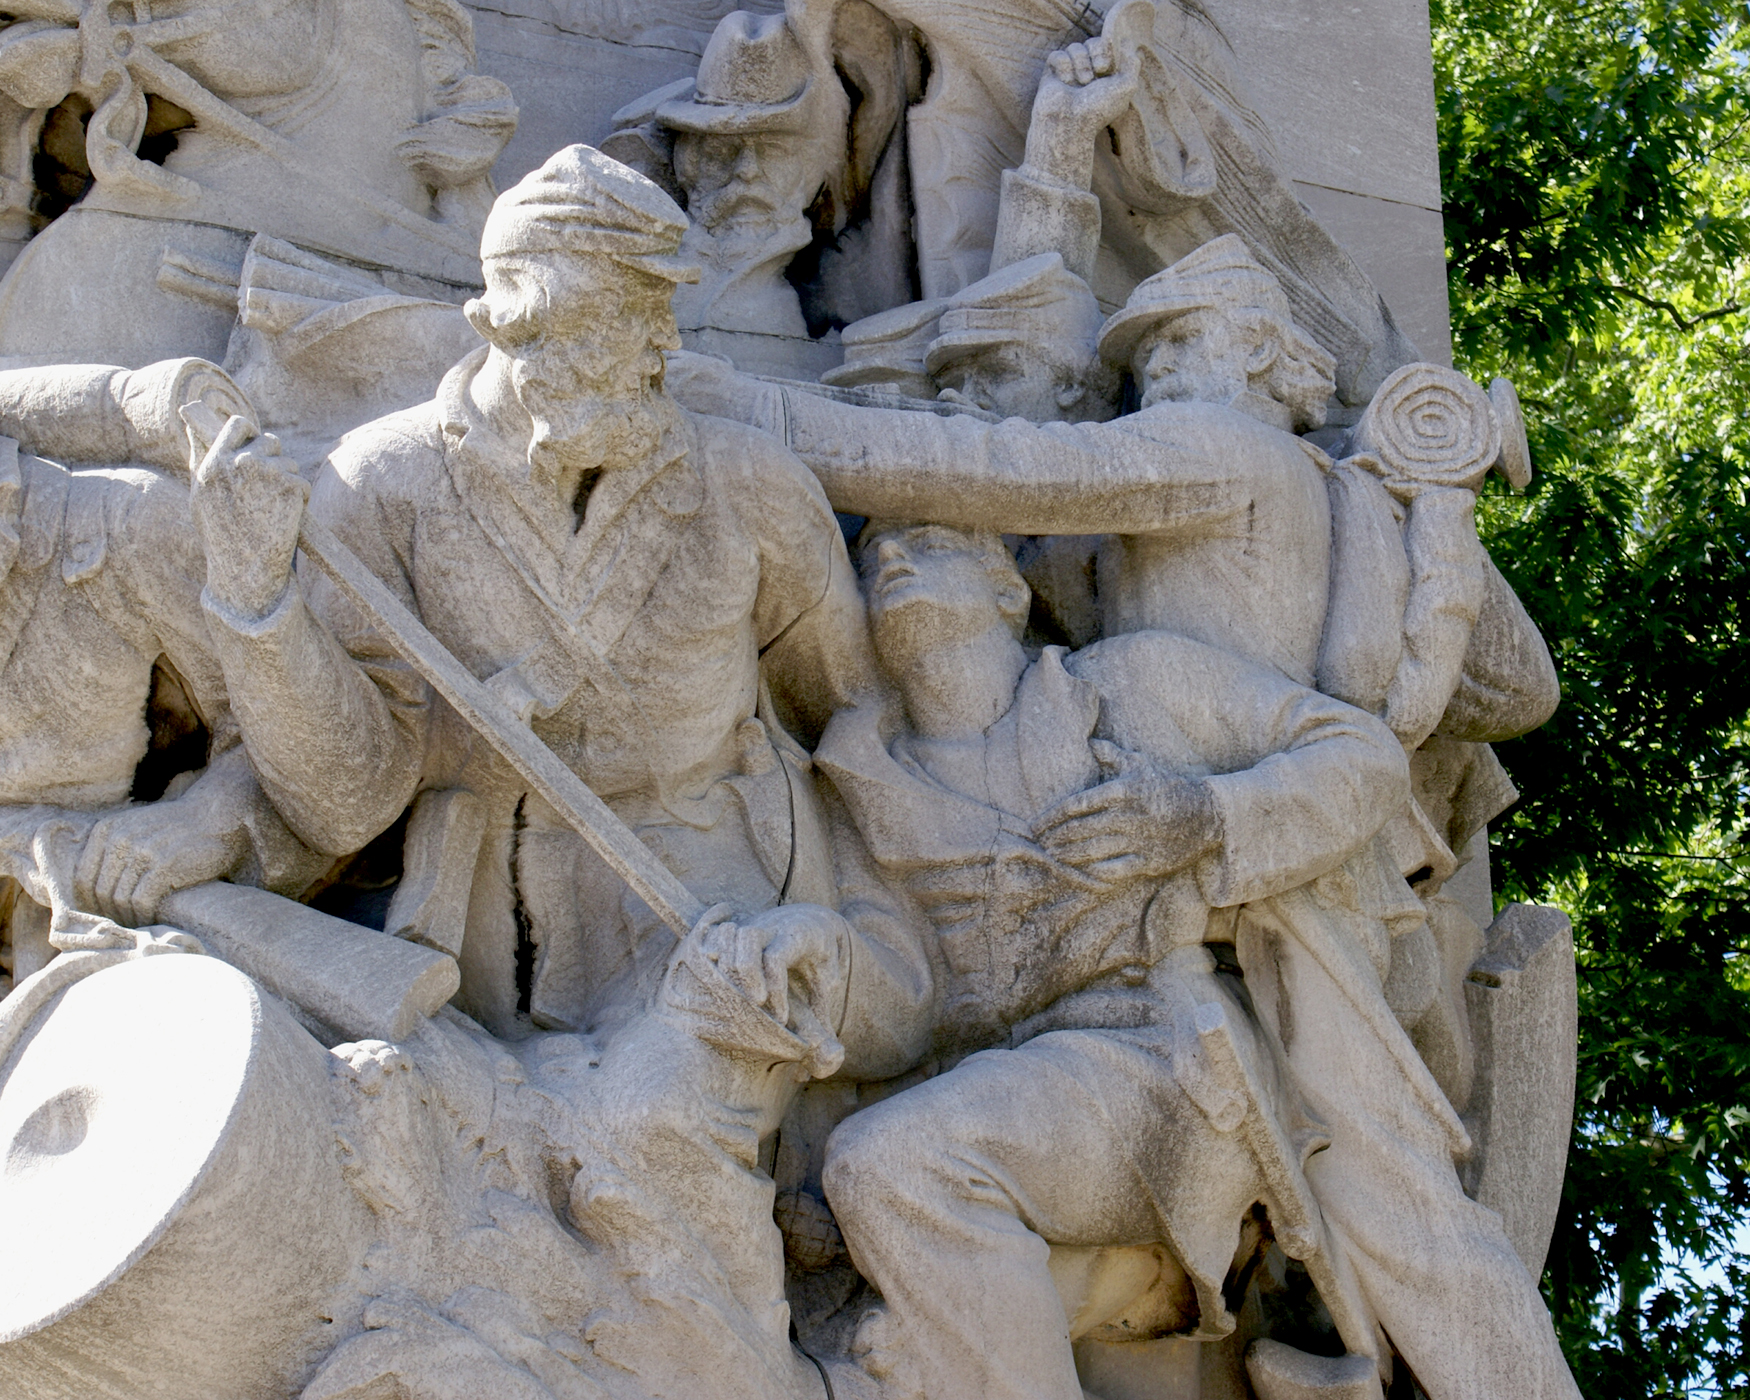 Civil War Soldiers and Sailors Memorial by Hermon Atkins MacNeil